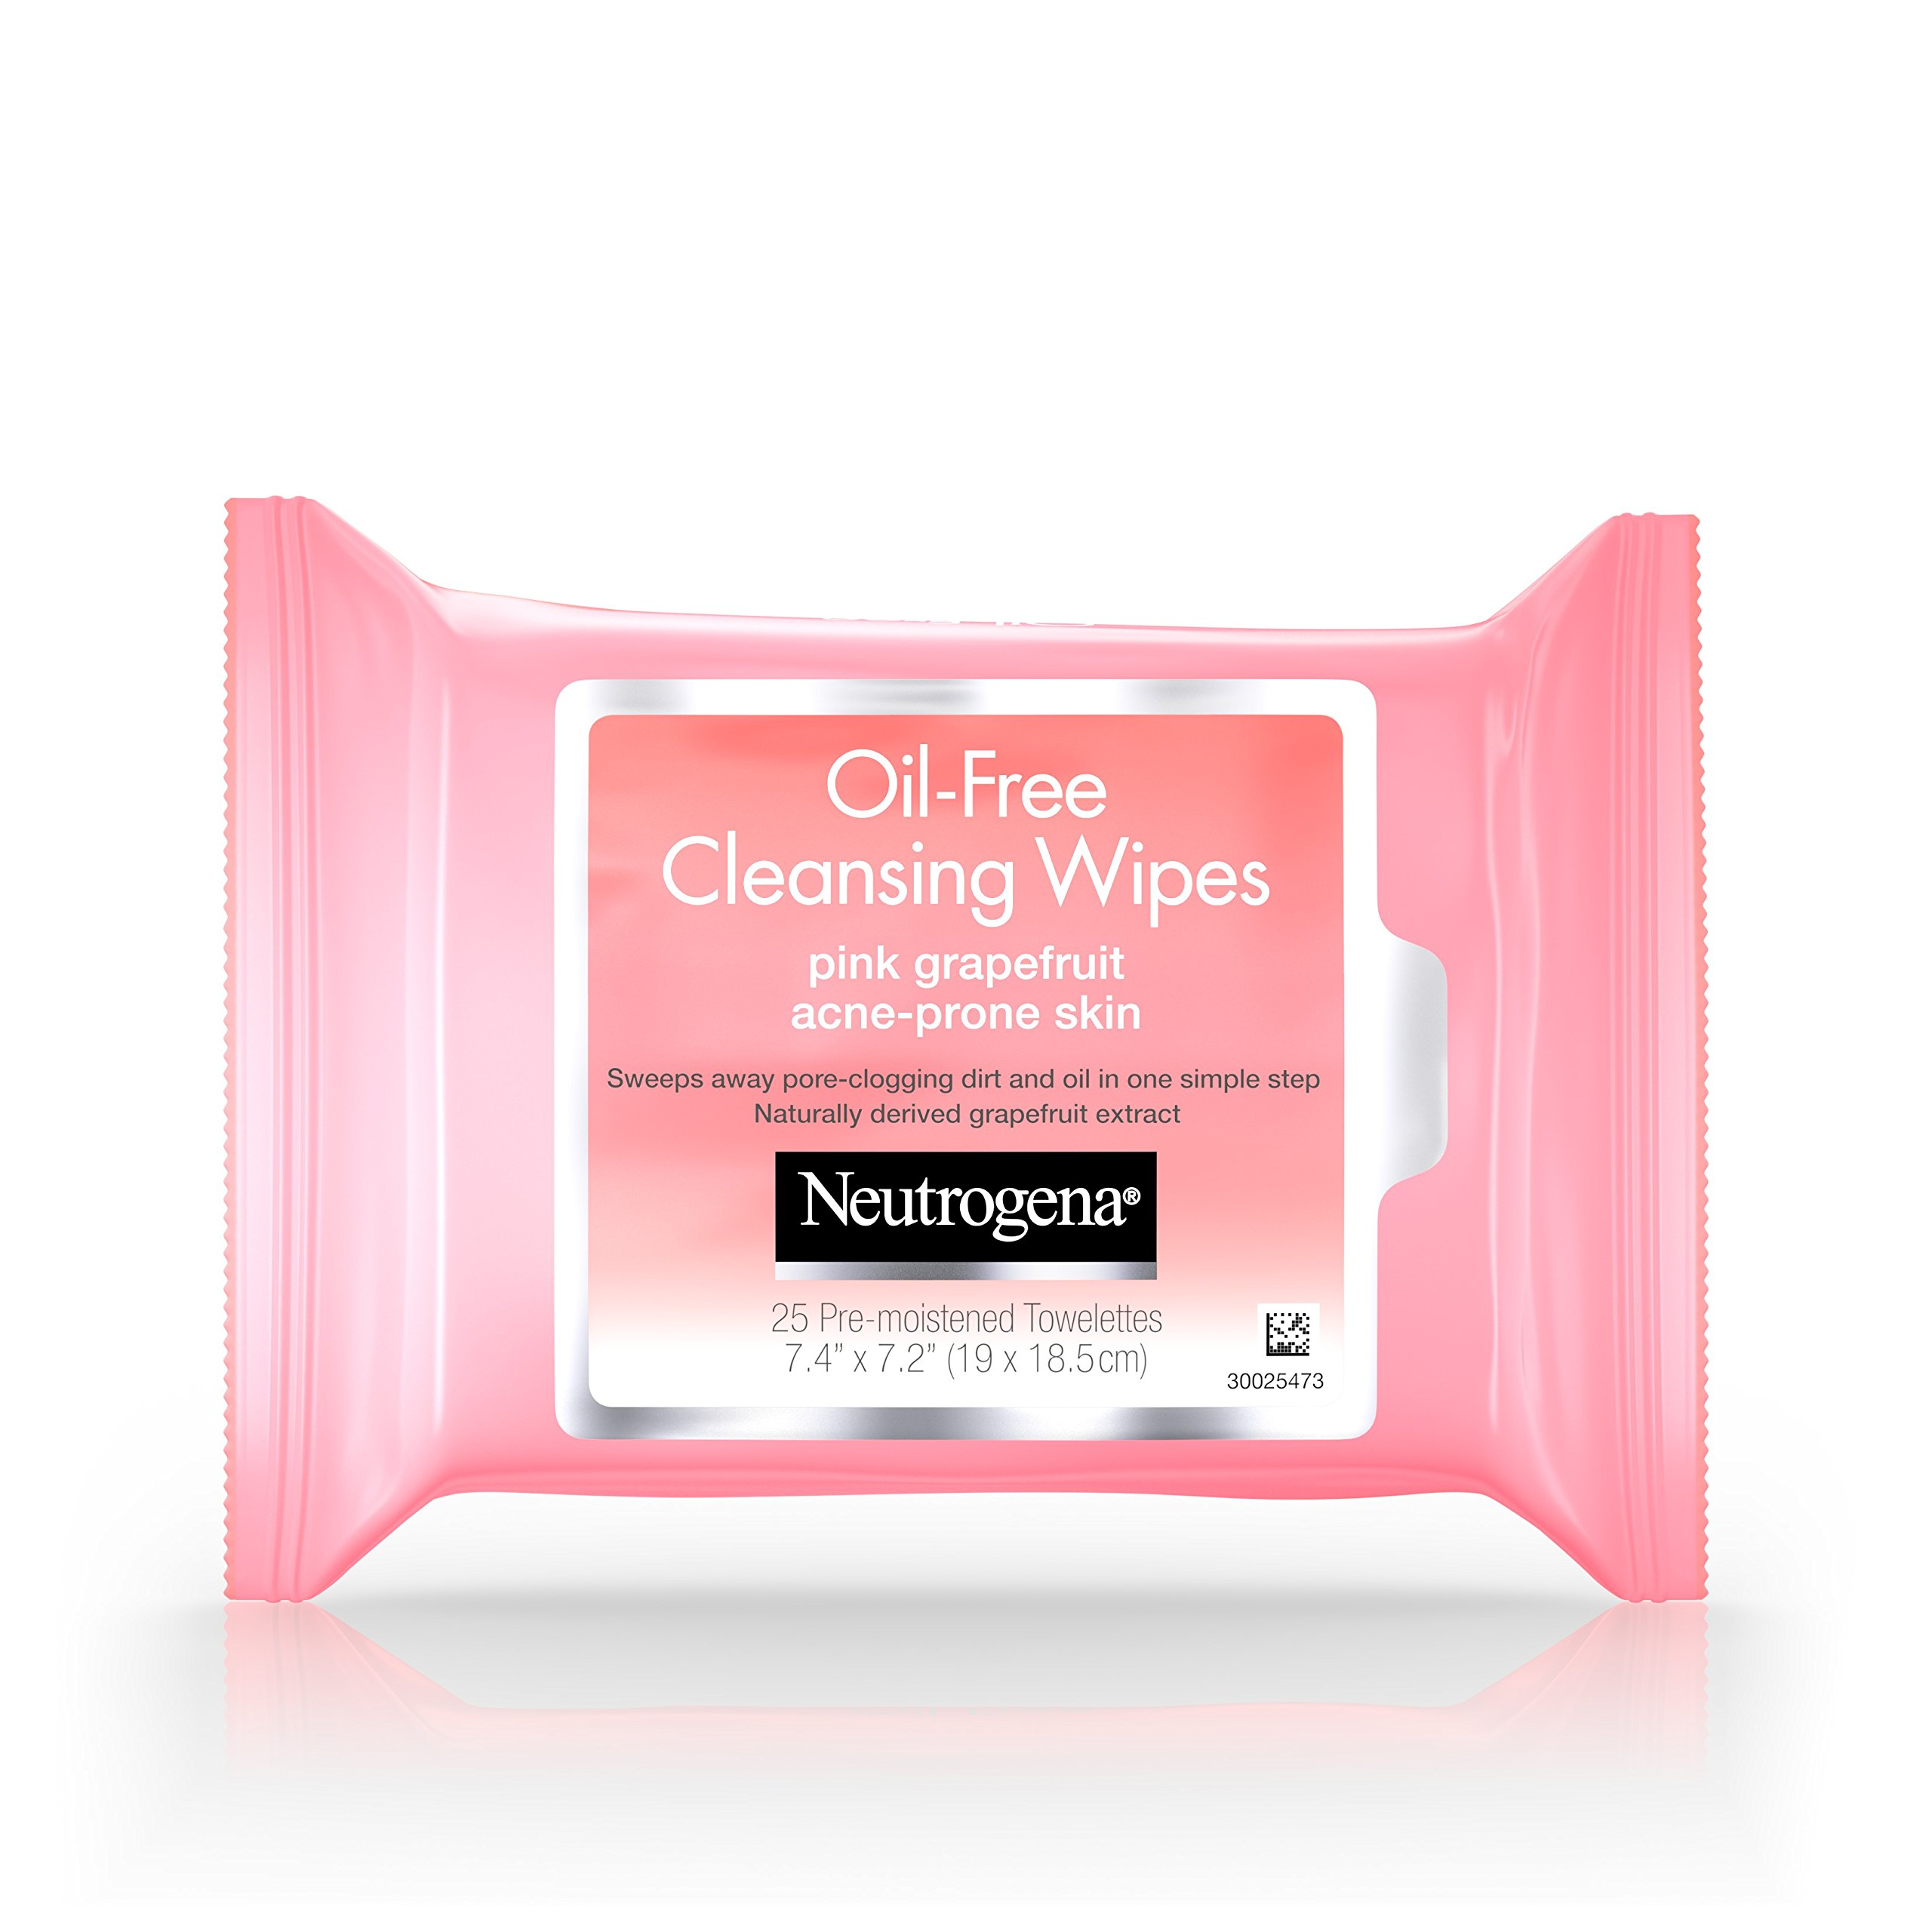 Neutrogena Oil Free Facial Cleansing Makeup Wipes with Pink Grapefruit, Disposable Acne Face Towelettes to Remove Dirt, Oil, and Makeup for Acne Prone Skin, 25 ct (Pack of 6) by Neutrogena (Image #1)